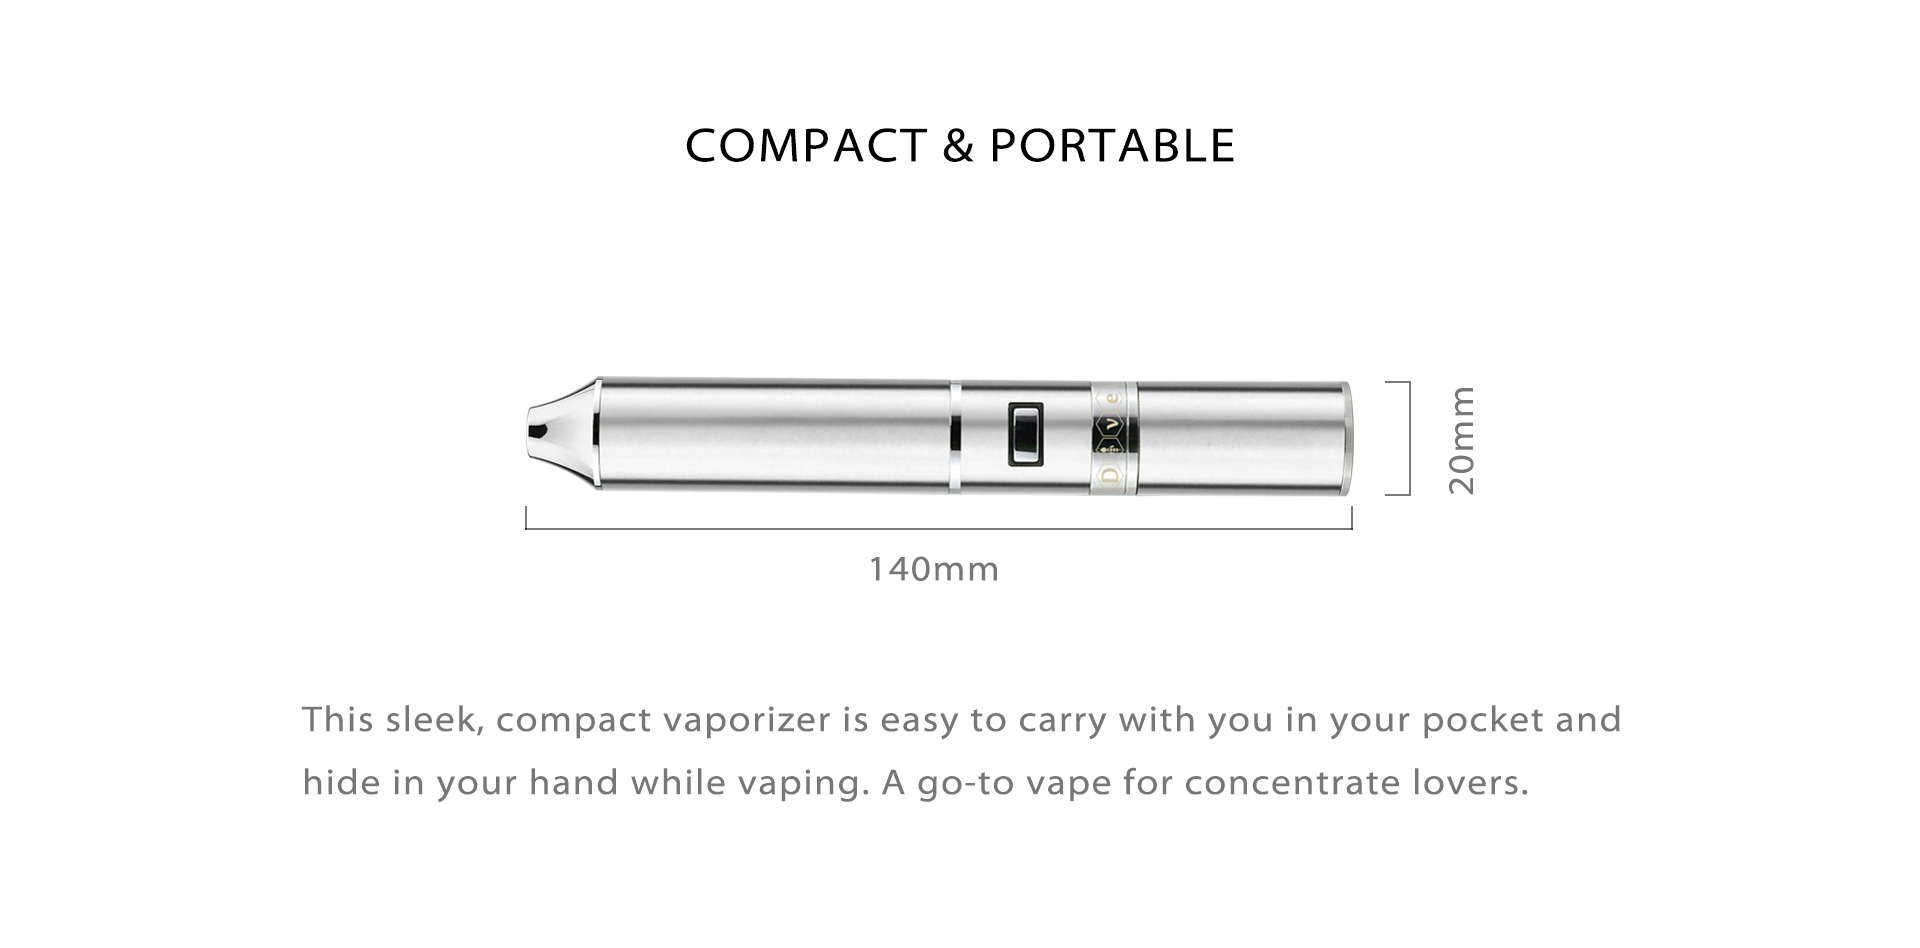 Due to Yocan Dive compact size, it'll store away in any pocket or bag comfortably.